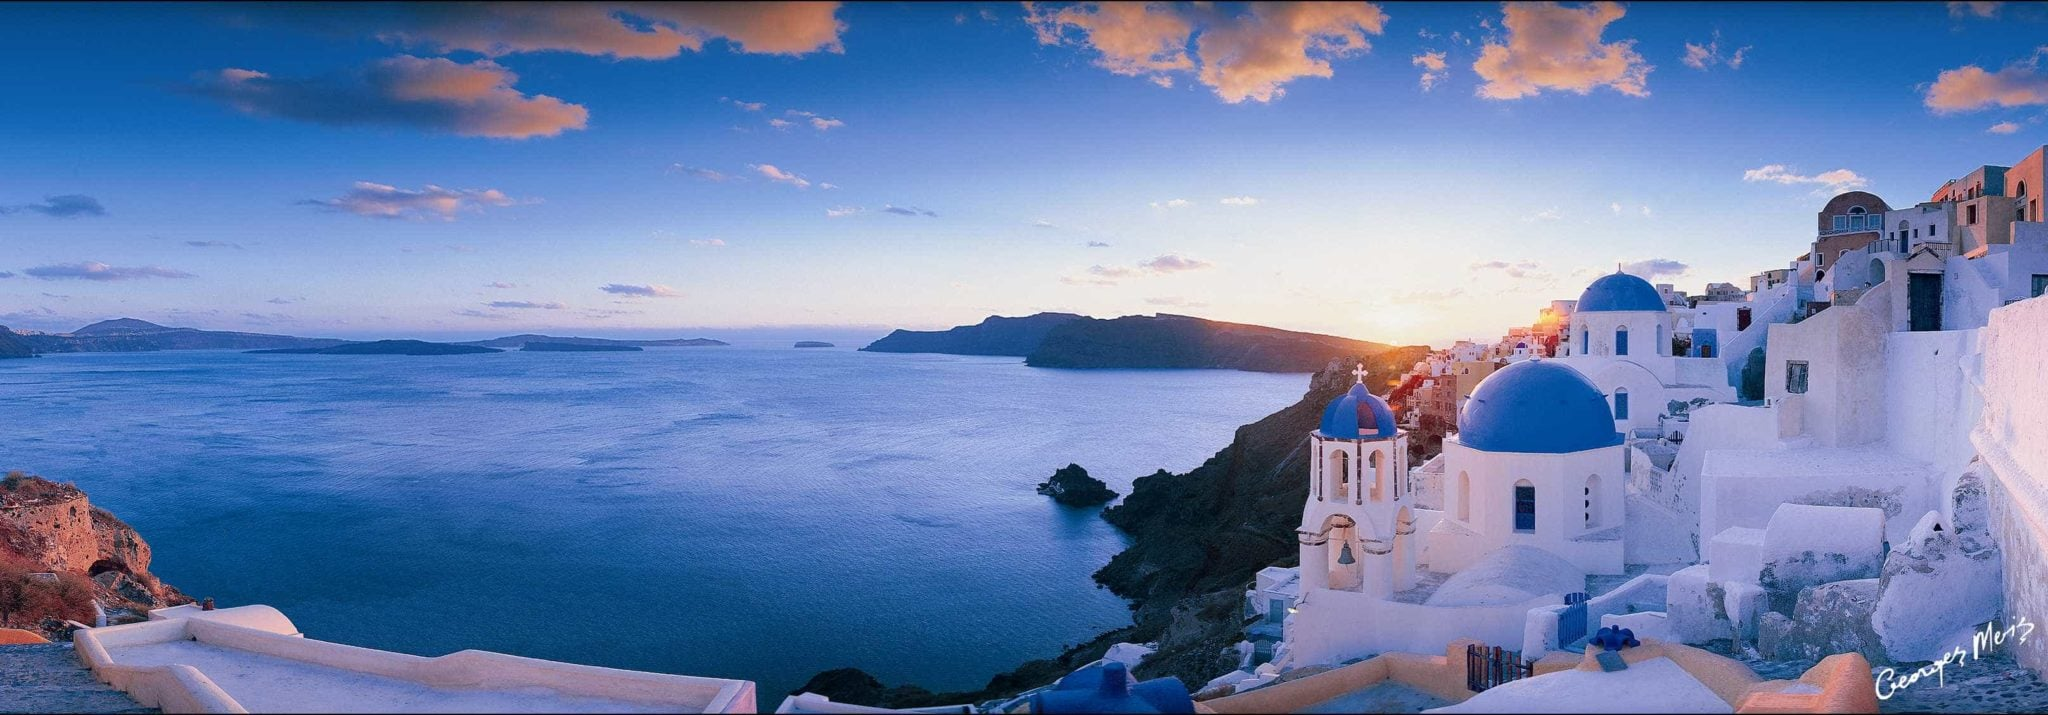 santorini-greek